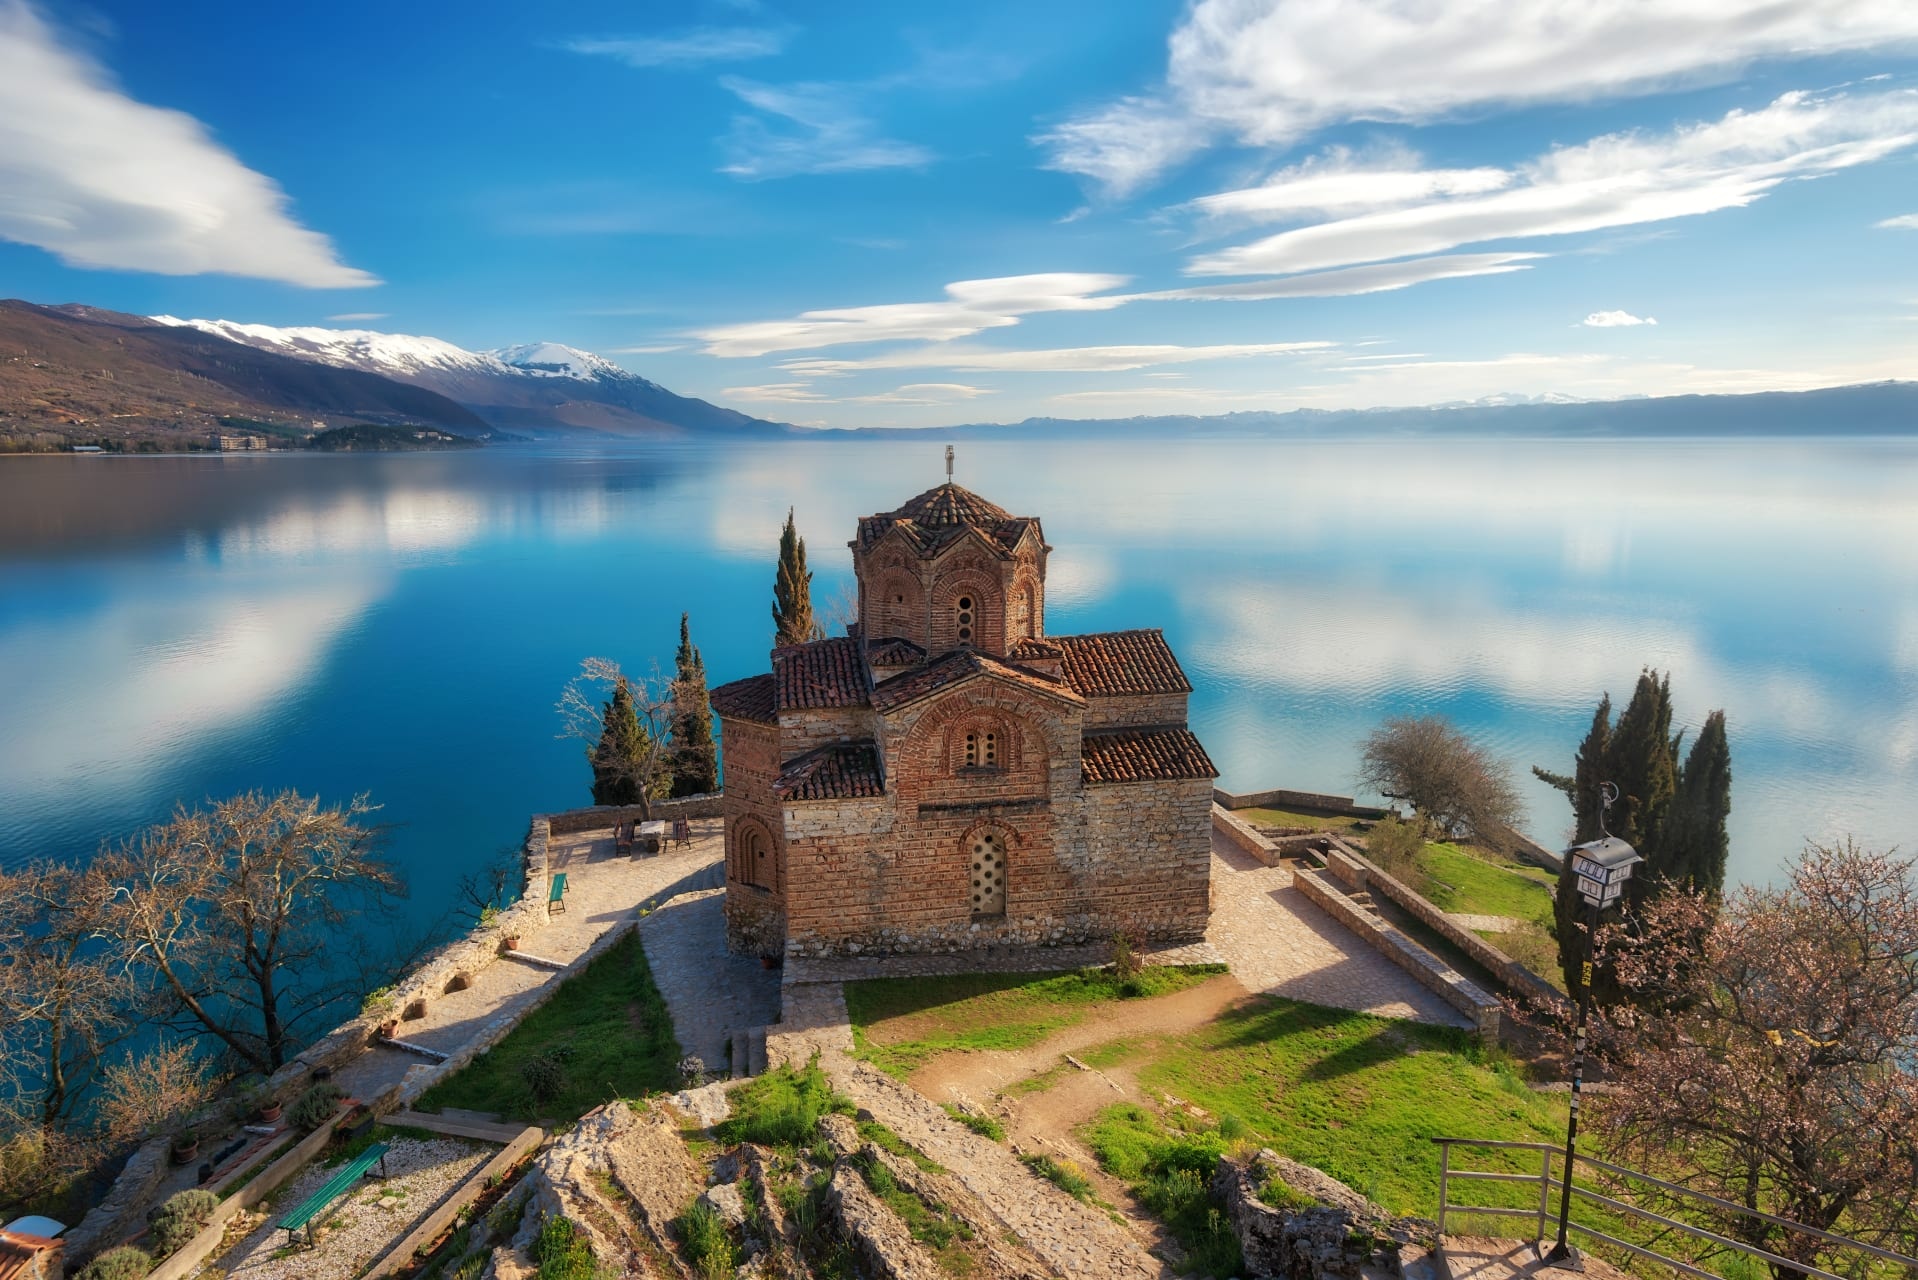 Ohrid cover image